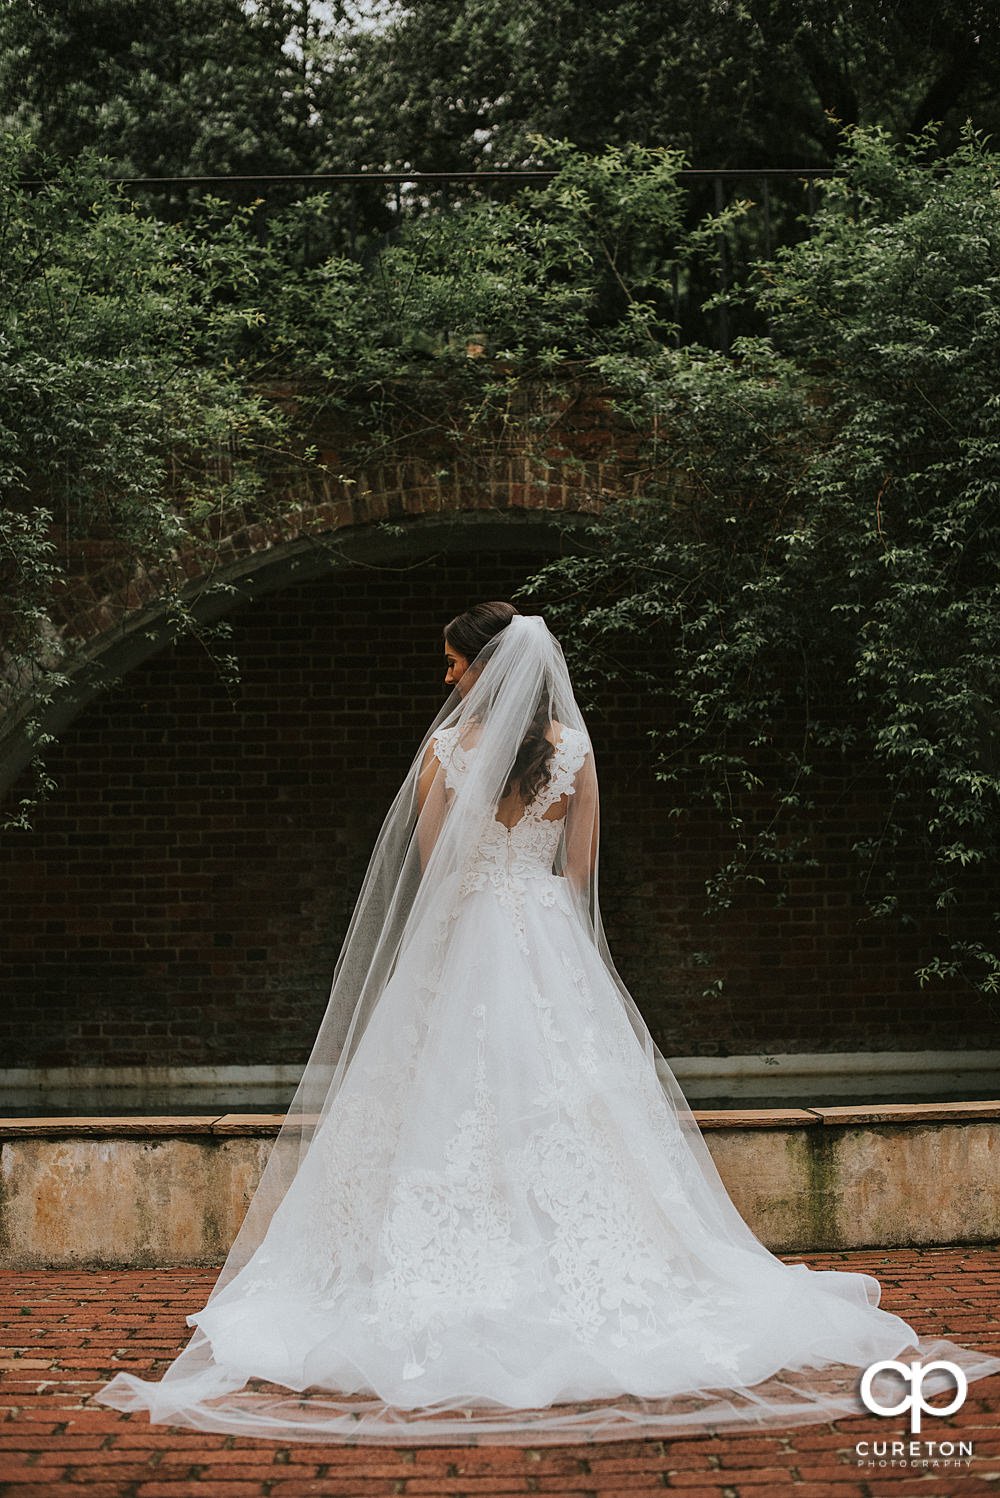 Bride with long veil blowing in the wind showing the back of teh dress in the rose garden at Furman University.